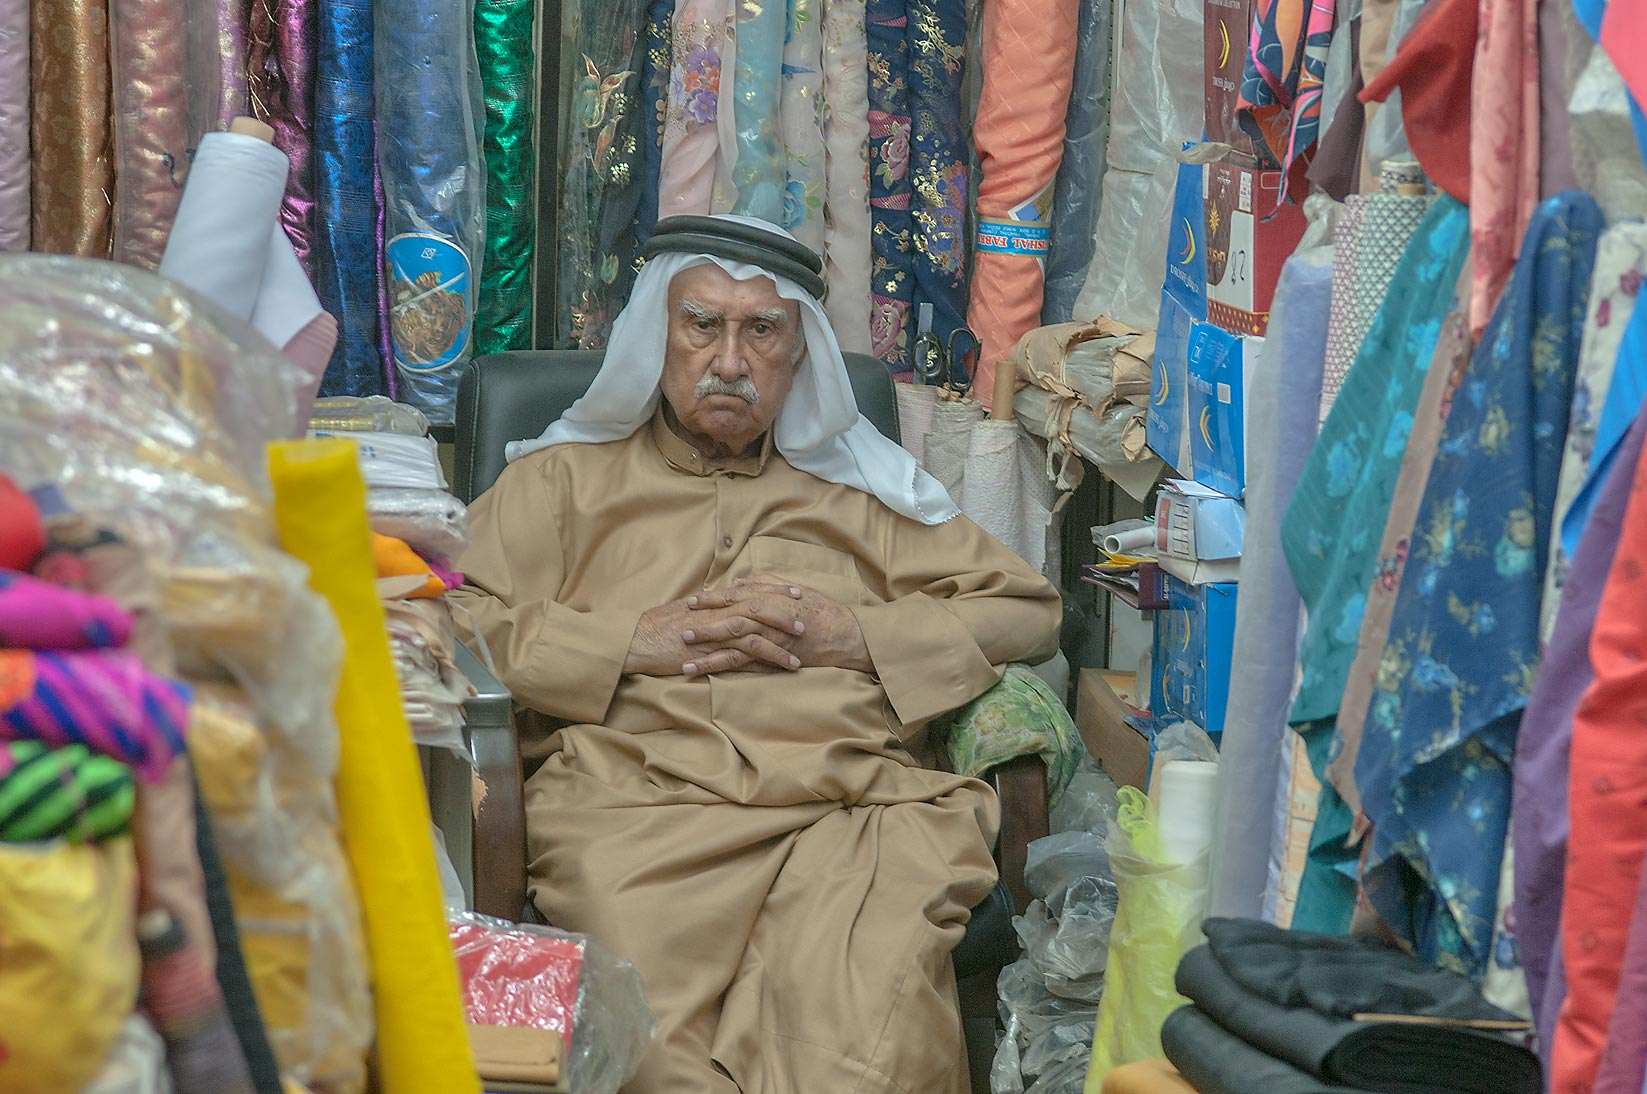 Textile shop in Souq Waqif (Old Market). Doha, Qatar